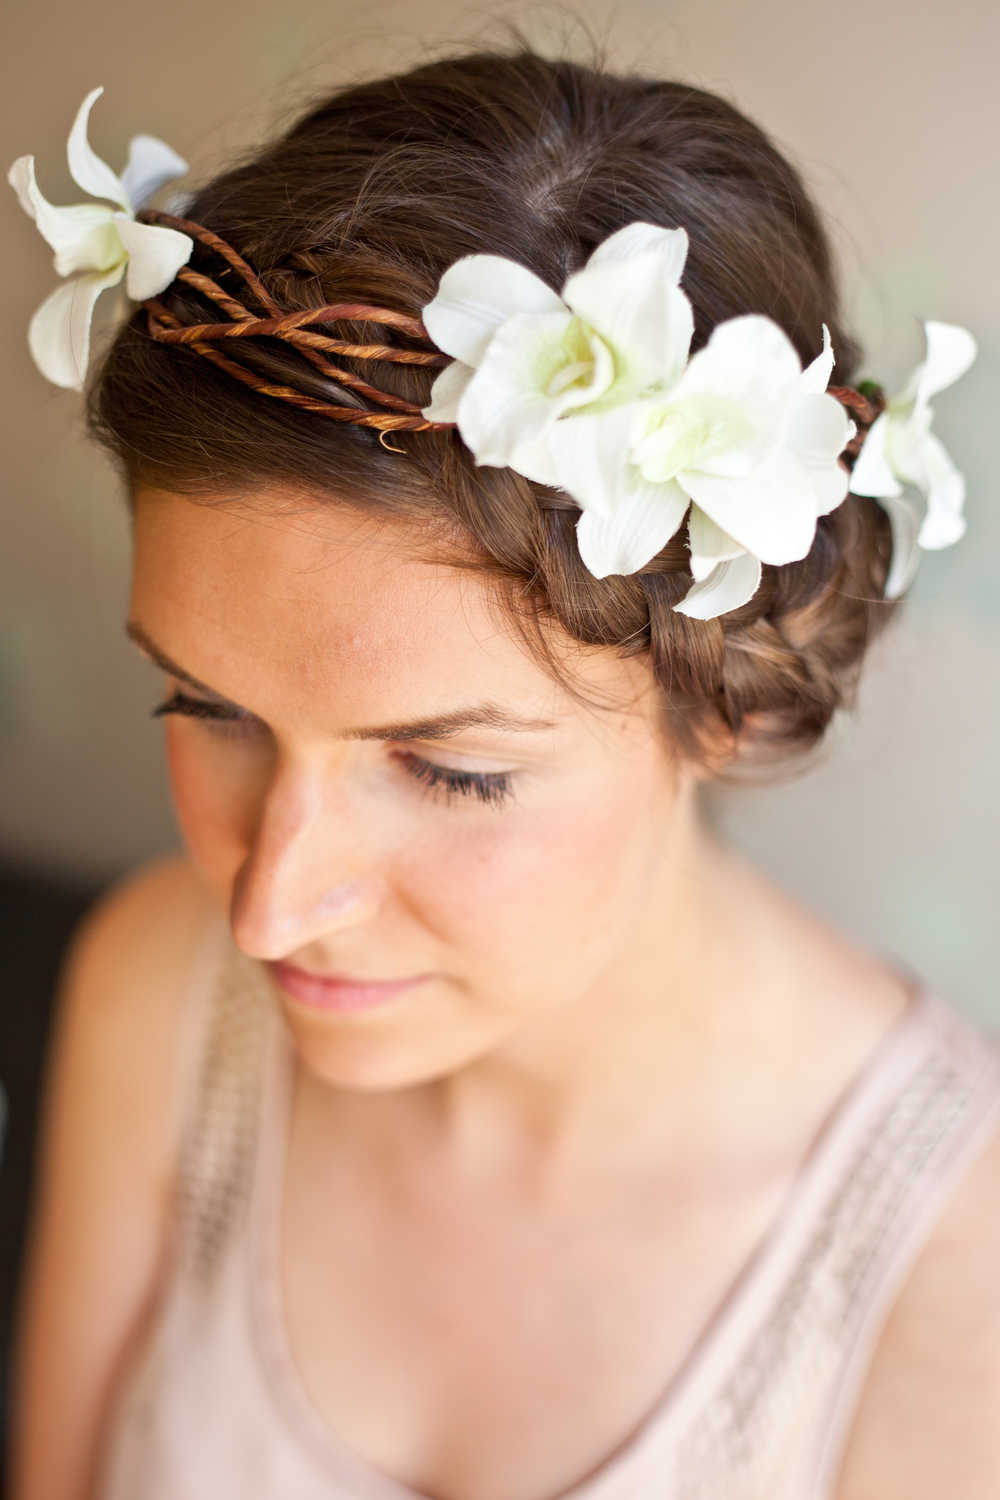 Lovehair floral headbands-070.jpg